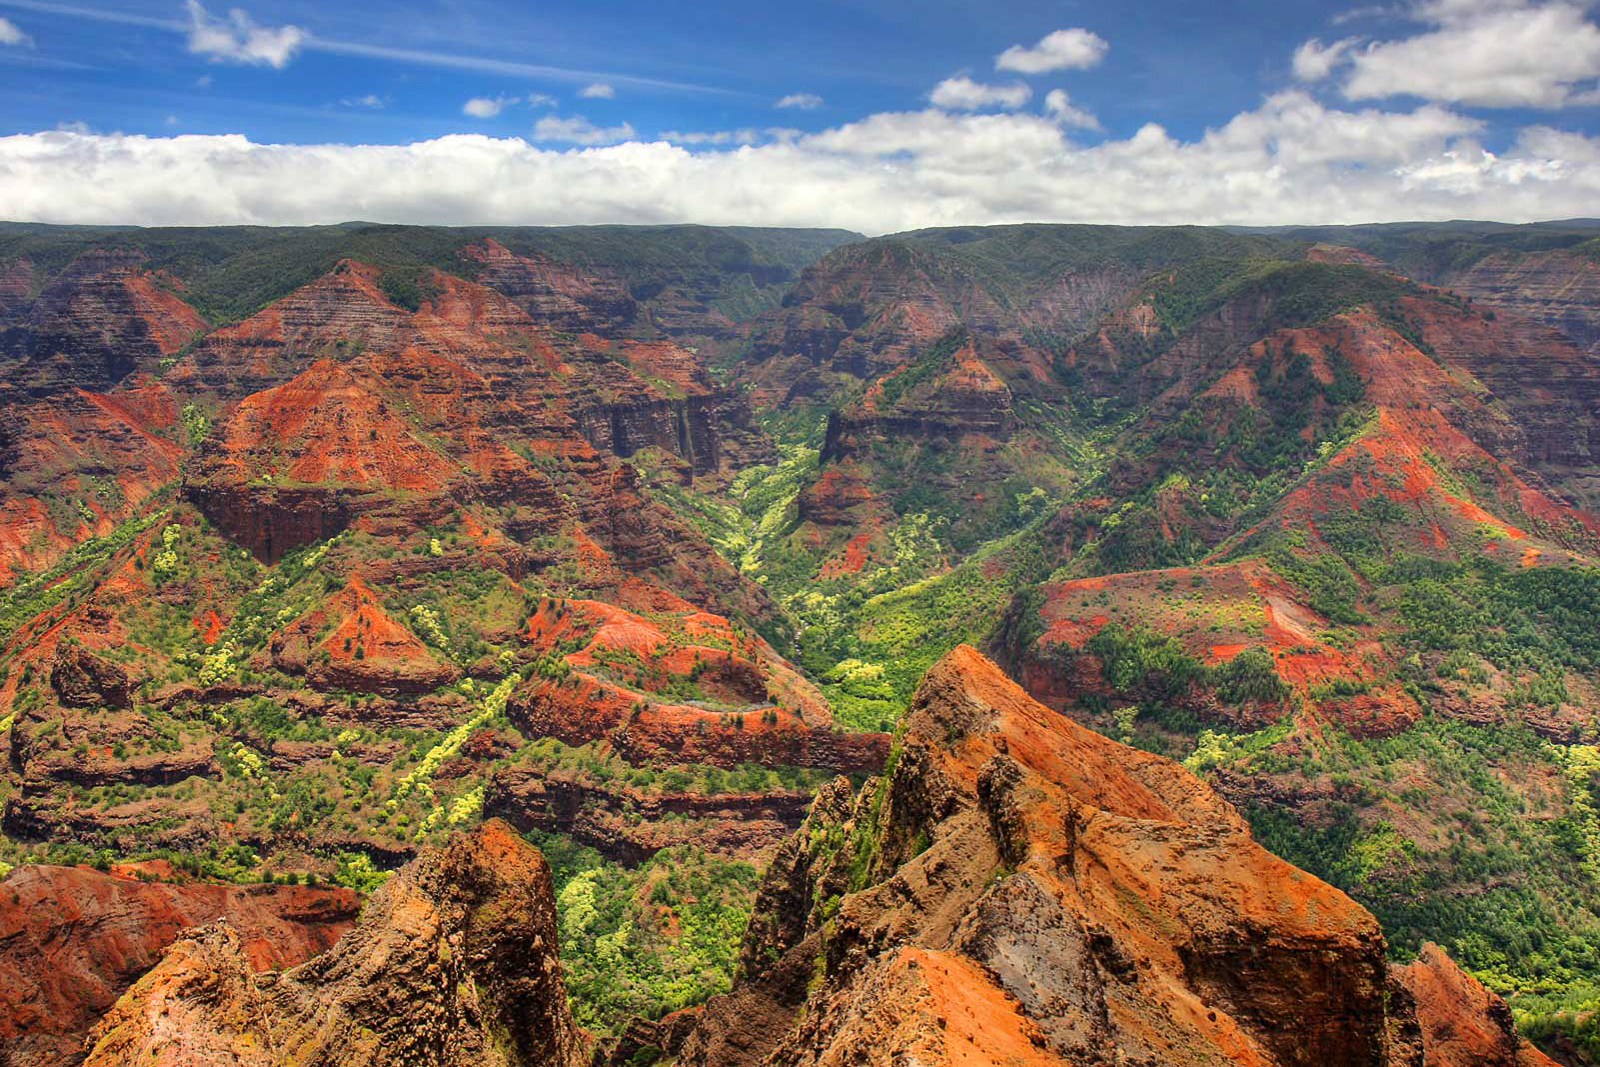 WAIMEA CANYON STATE PARK - Waimea Canyon, also known as the Grand Canyon of the Pacific, is a large canyon, approximately ten miles long and up to 3,000 feet deep, located on the western side of Kauaʻi in the Hawaiian Islands of the United States. Waimea is Hawaiian for